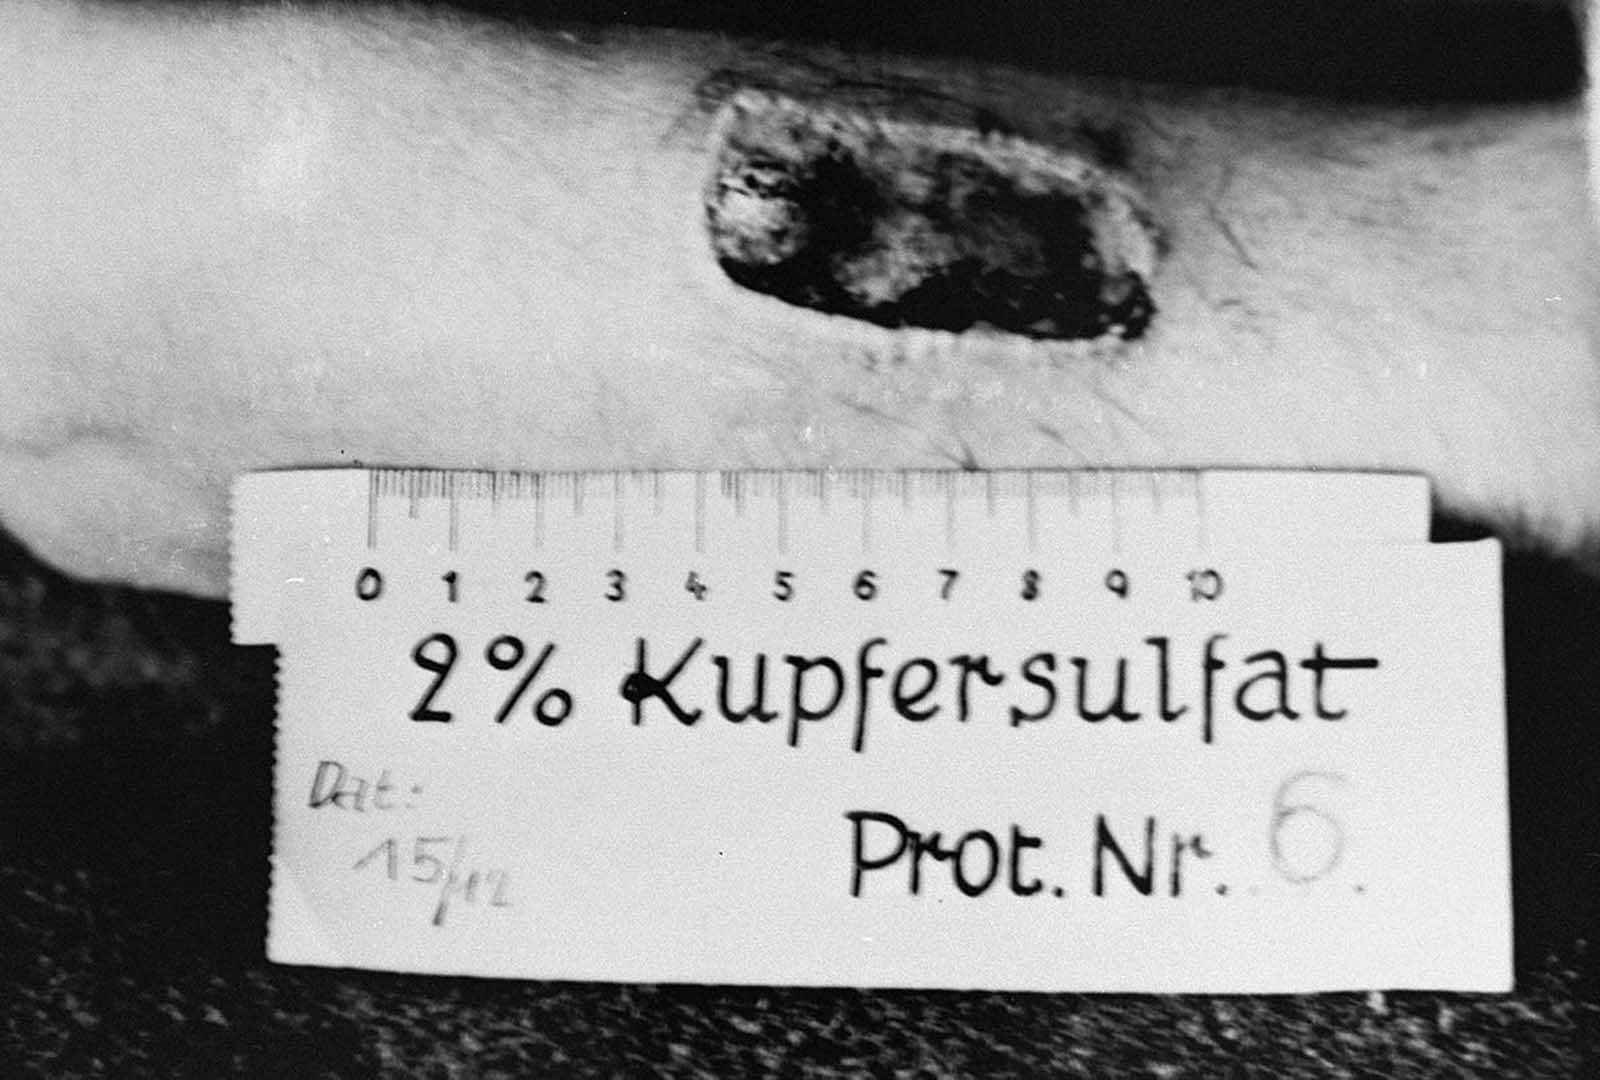 A victim of Nazi medical experimentation. A victim's arm shows a deep burn from phosphorus at Ravensbrueck, Germany, in November of 1943. The photograph shows the results of a medical experiment dealing with phosphorous that was carried out by doctors at Ravensbrueck. In the experiment, a mixture of phosphorus and rubber was applied to the skin and ignited. After twenty seconds, the fire was extinguished with water. After three days, the burn was treated with Echinacin in liquid form. After two weeks the wound had healed. This photograph, taken by a camp physician, was entered as evidence during the Doctors Trial at Nuremberg.